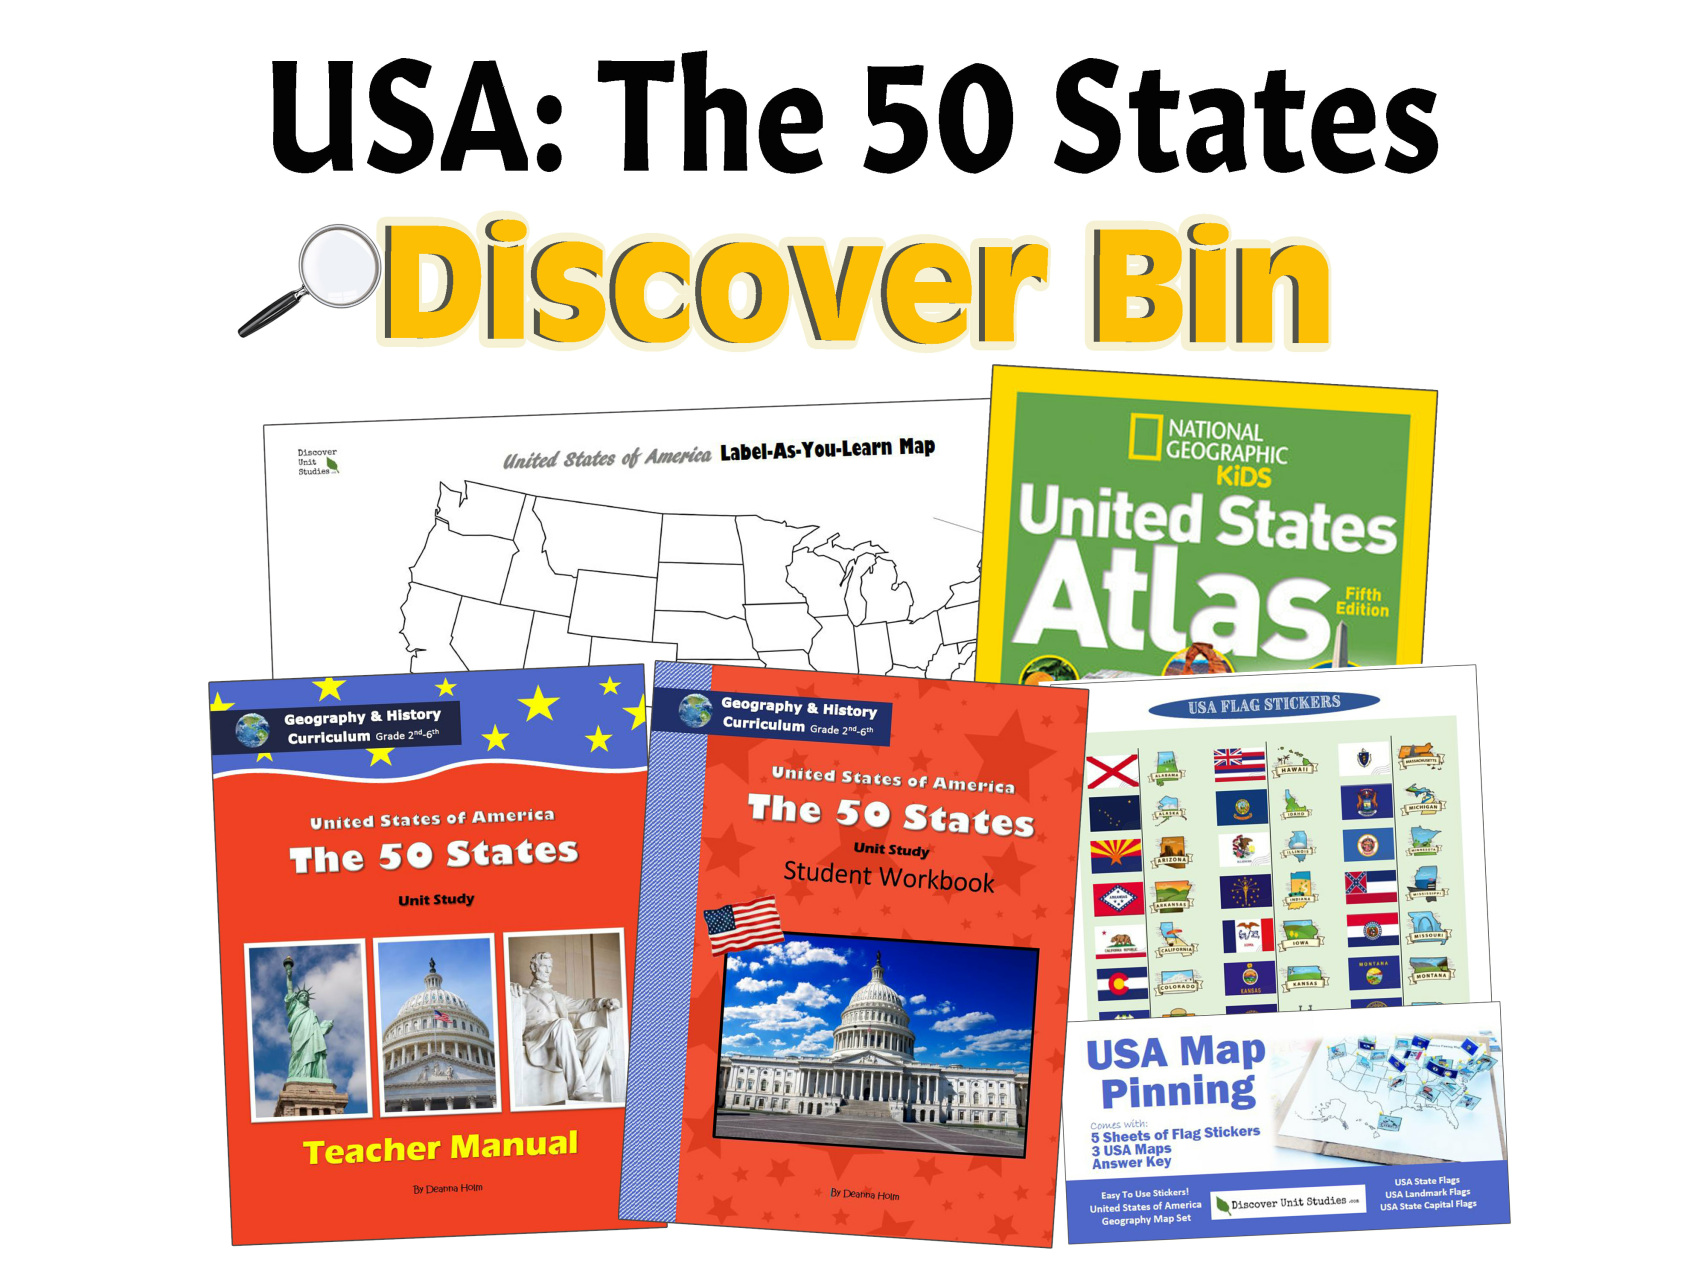 USA: The 50 States Geography & History Curriculum Geographic Map Of Usa on industrial map of usa, geographic features of us, geographic new york map, tree of usa, detailed map of usa, geopolitical map of usa, cultural map of usa, topographic map of usa, socioeconomic map of usa, geo maps usa, territorial map of usa, map all rivers of usa, historic map of usa, utm map of usa, geophysical map of usa, functional map of usa, history map of usa, gis map of usa, business map of usa, transportation map of usa,